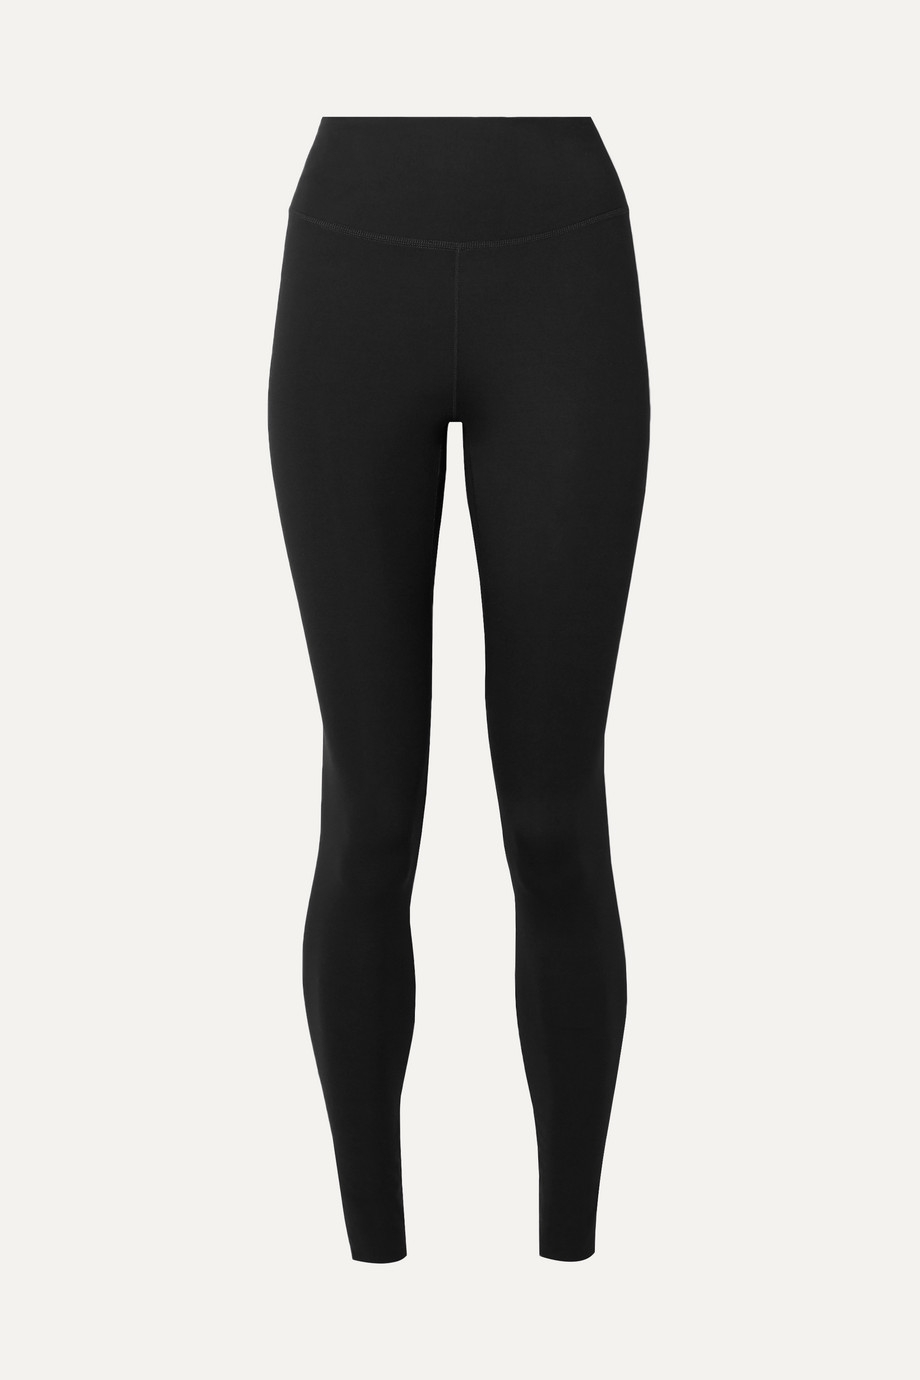 NIKE One Luxe Dri-FIT stretch leggings